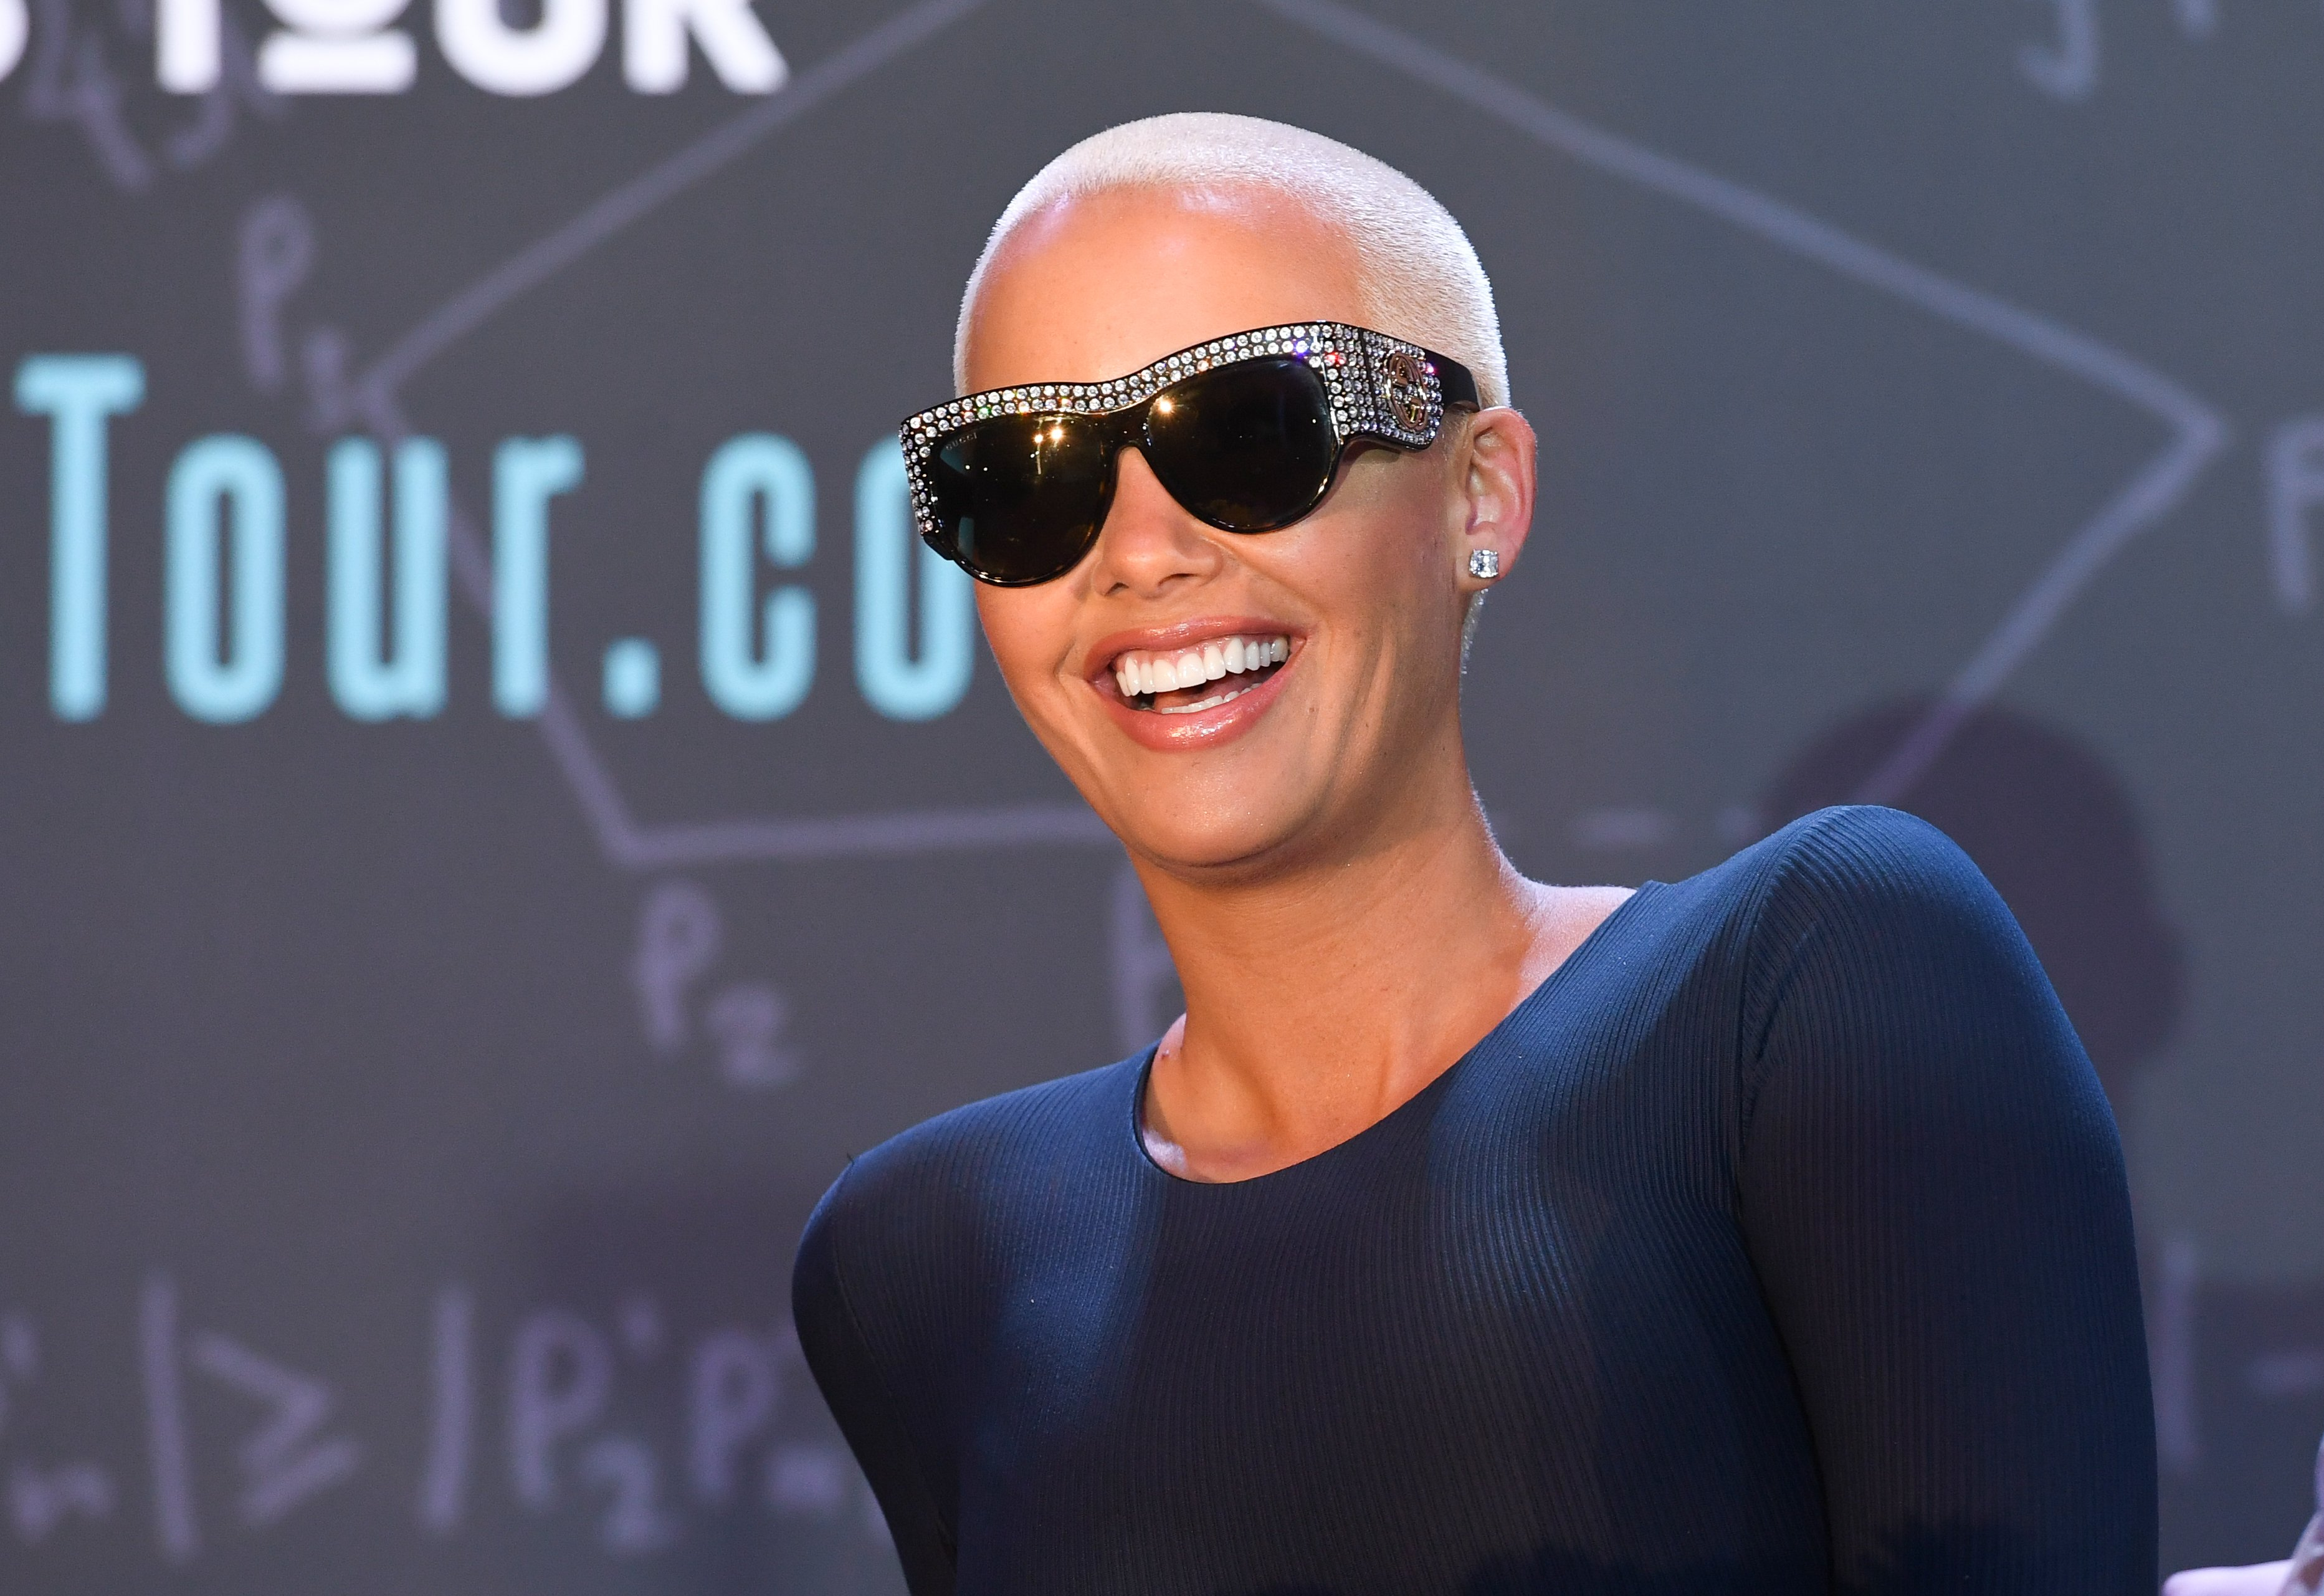 Amber Rose during an appearance at Clark Atlanta University on April 20, 2017 in Atlanta, Georgia. | Photo: Getty Images